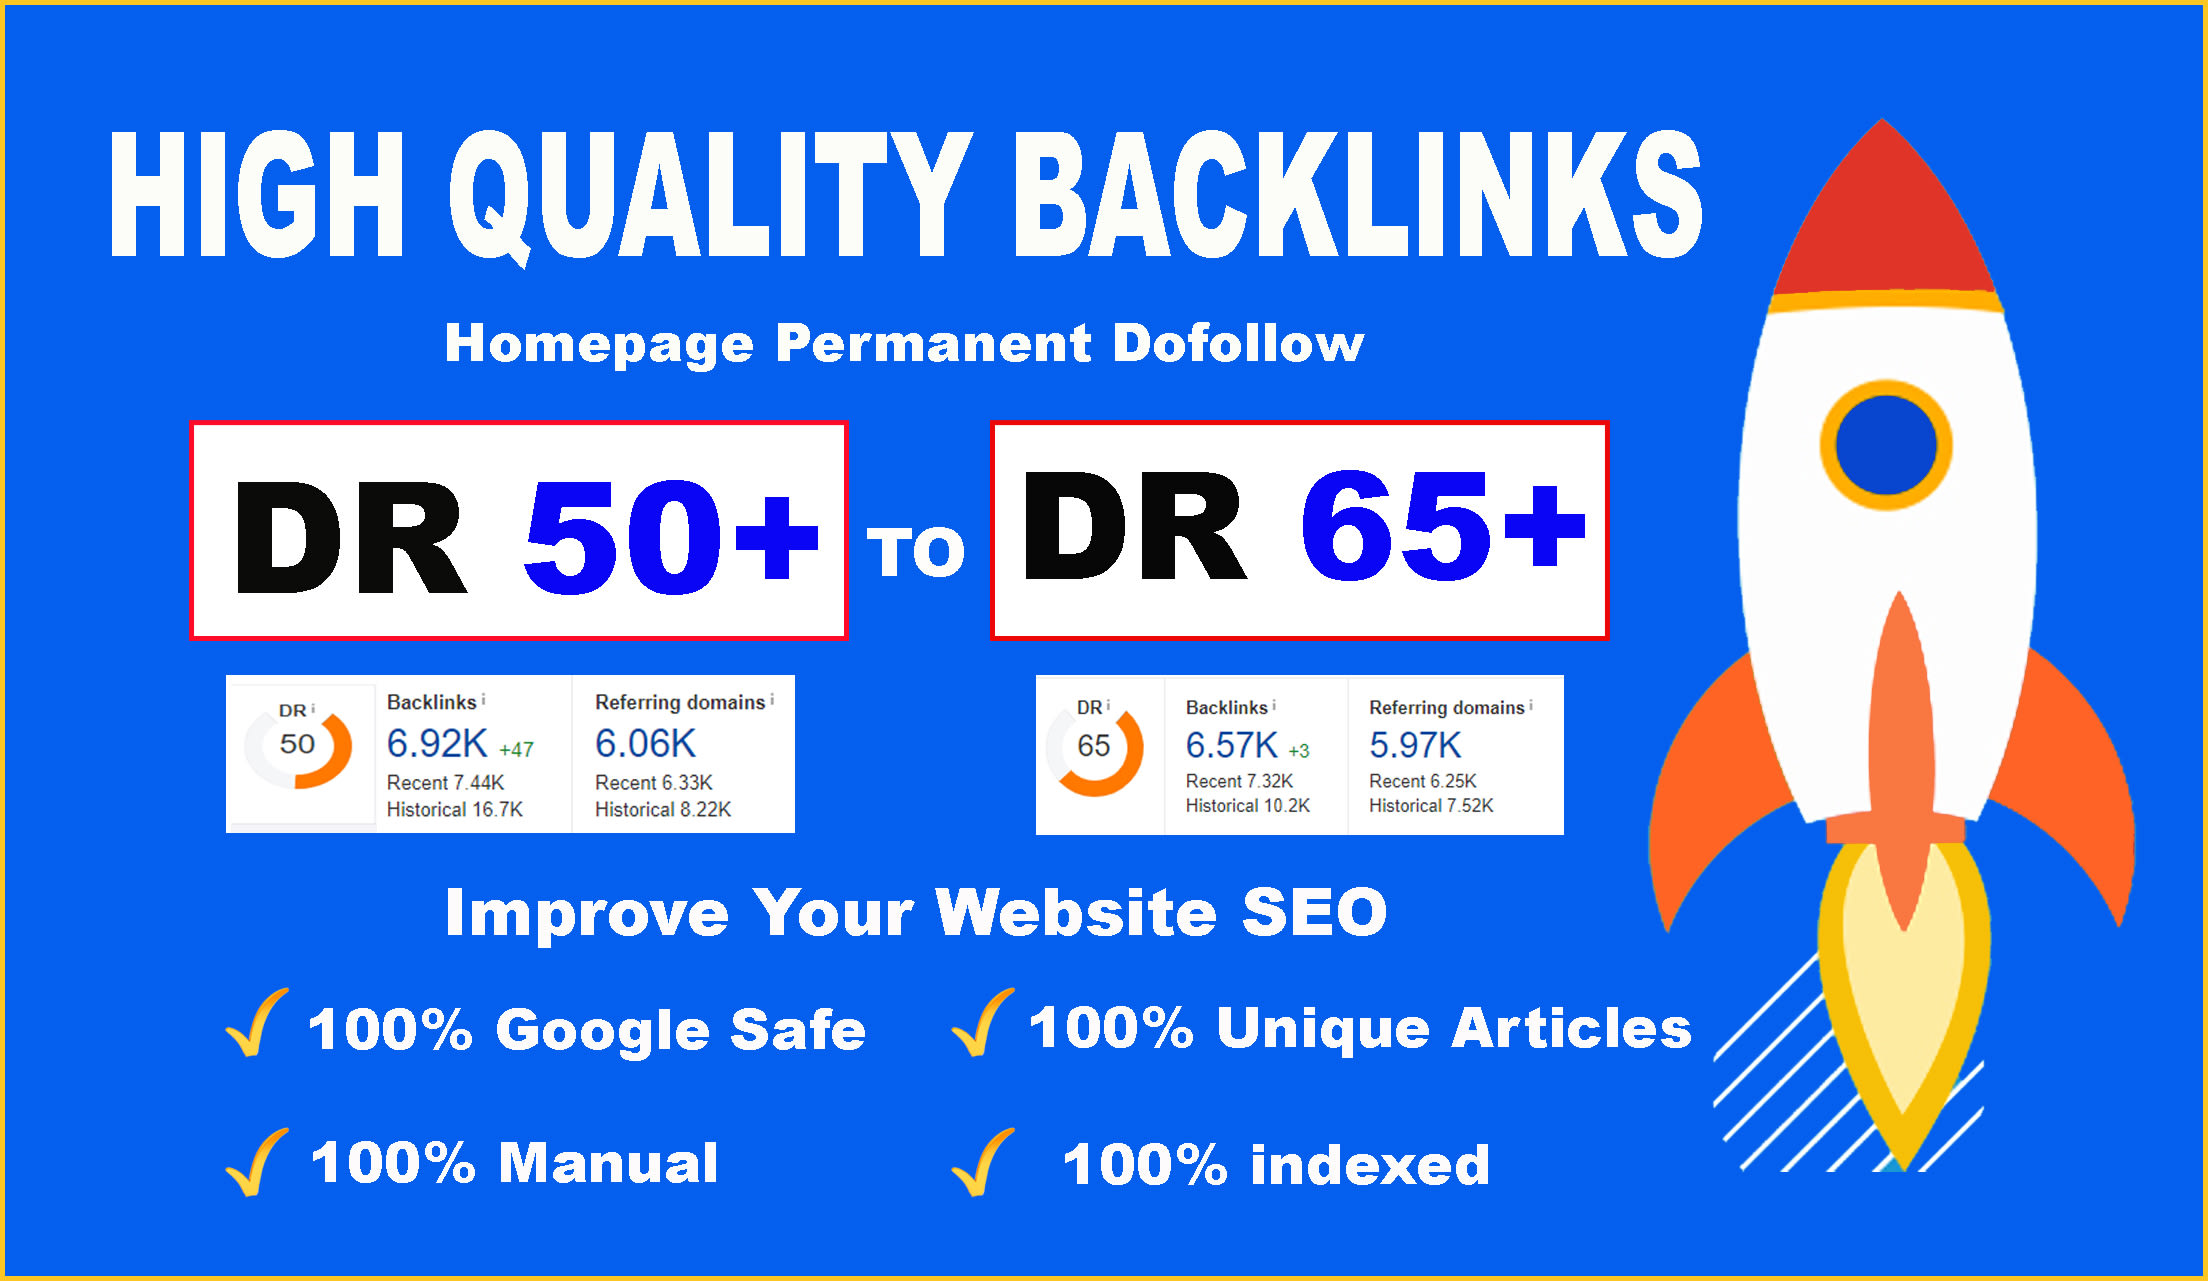 Bluild 5 PBN DR65+high quality homepage dofollow backlinks